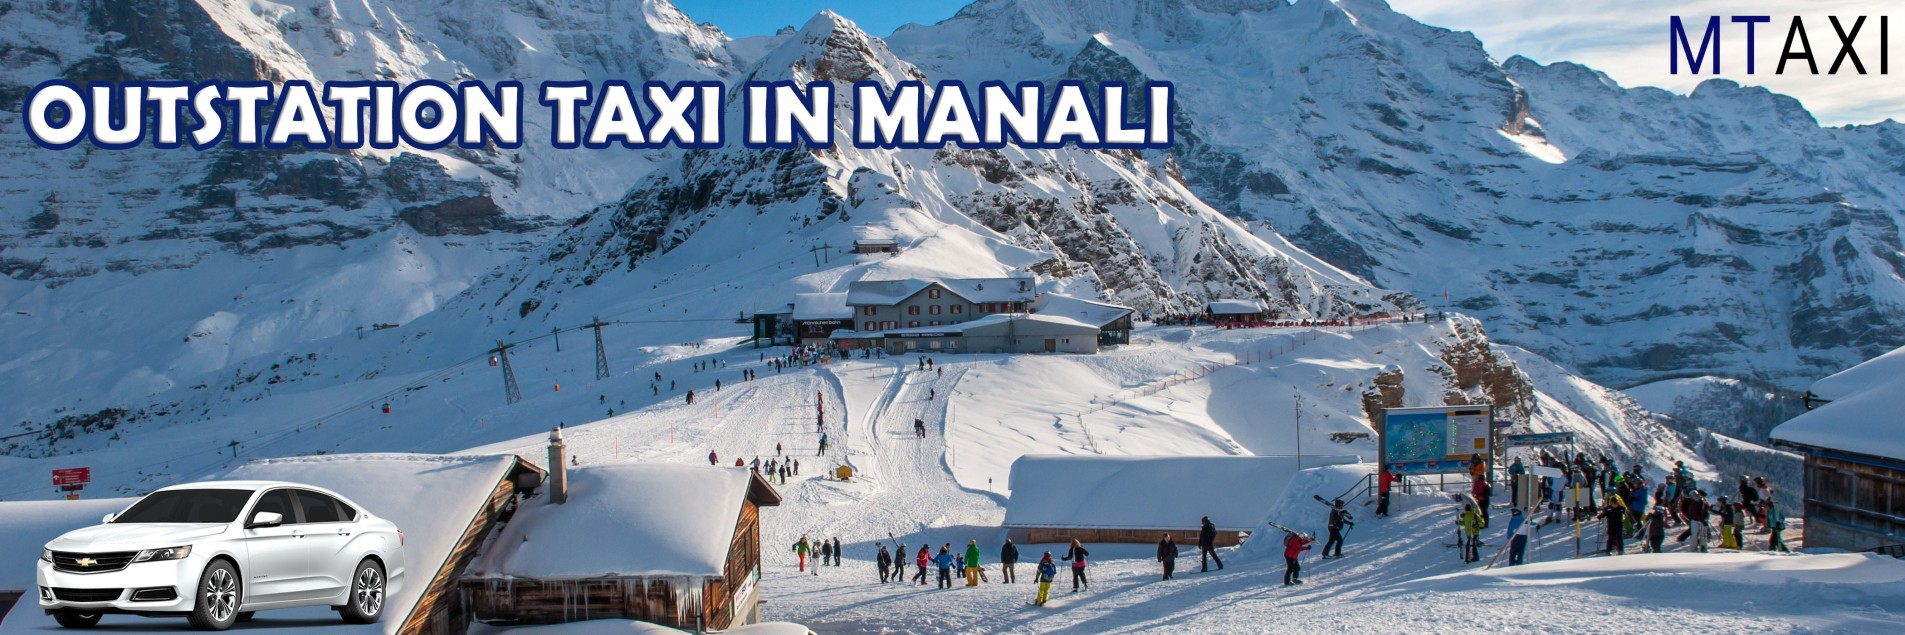 outstation taxi in manali